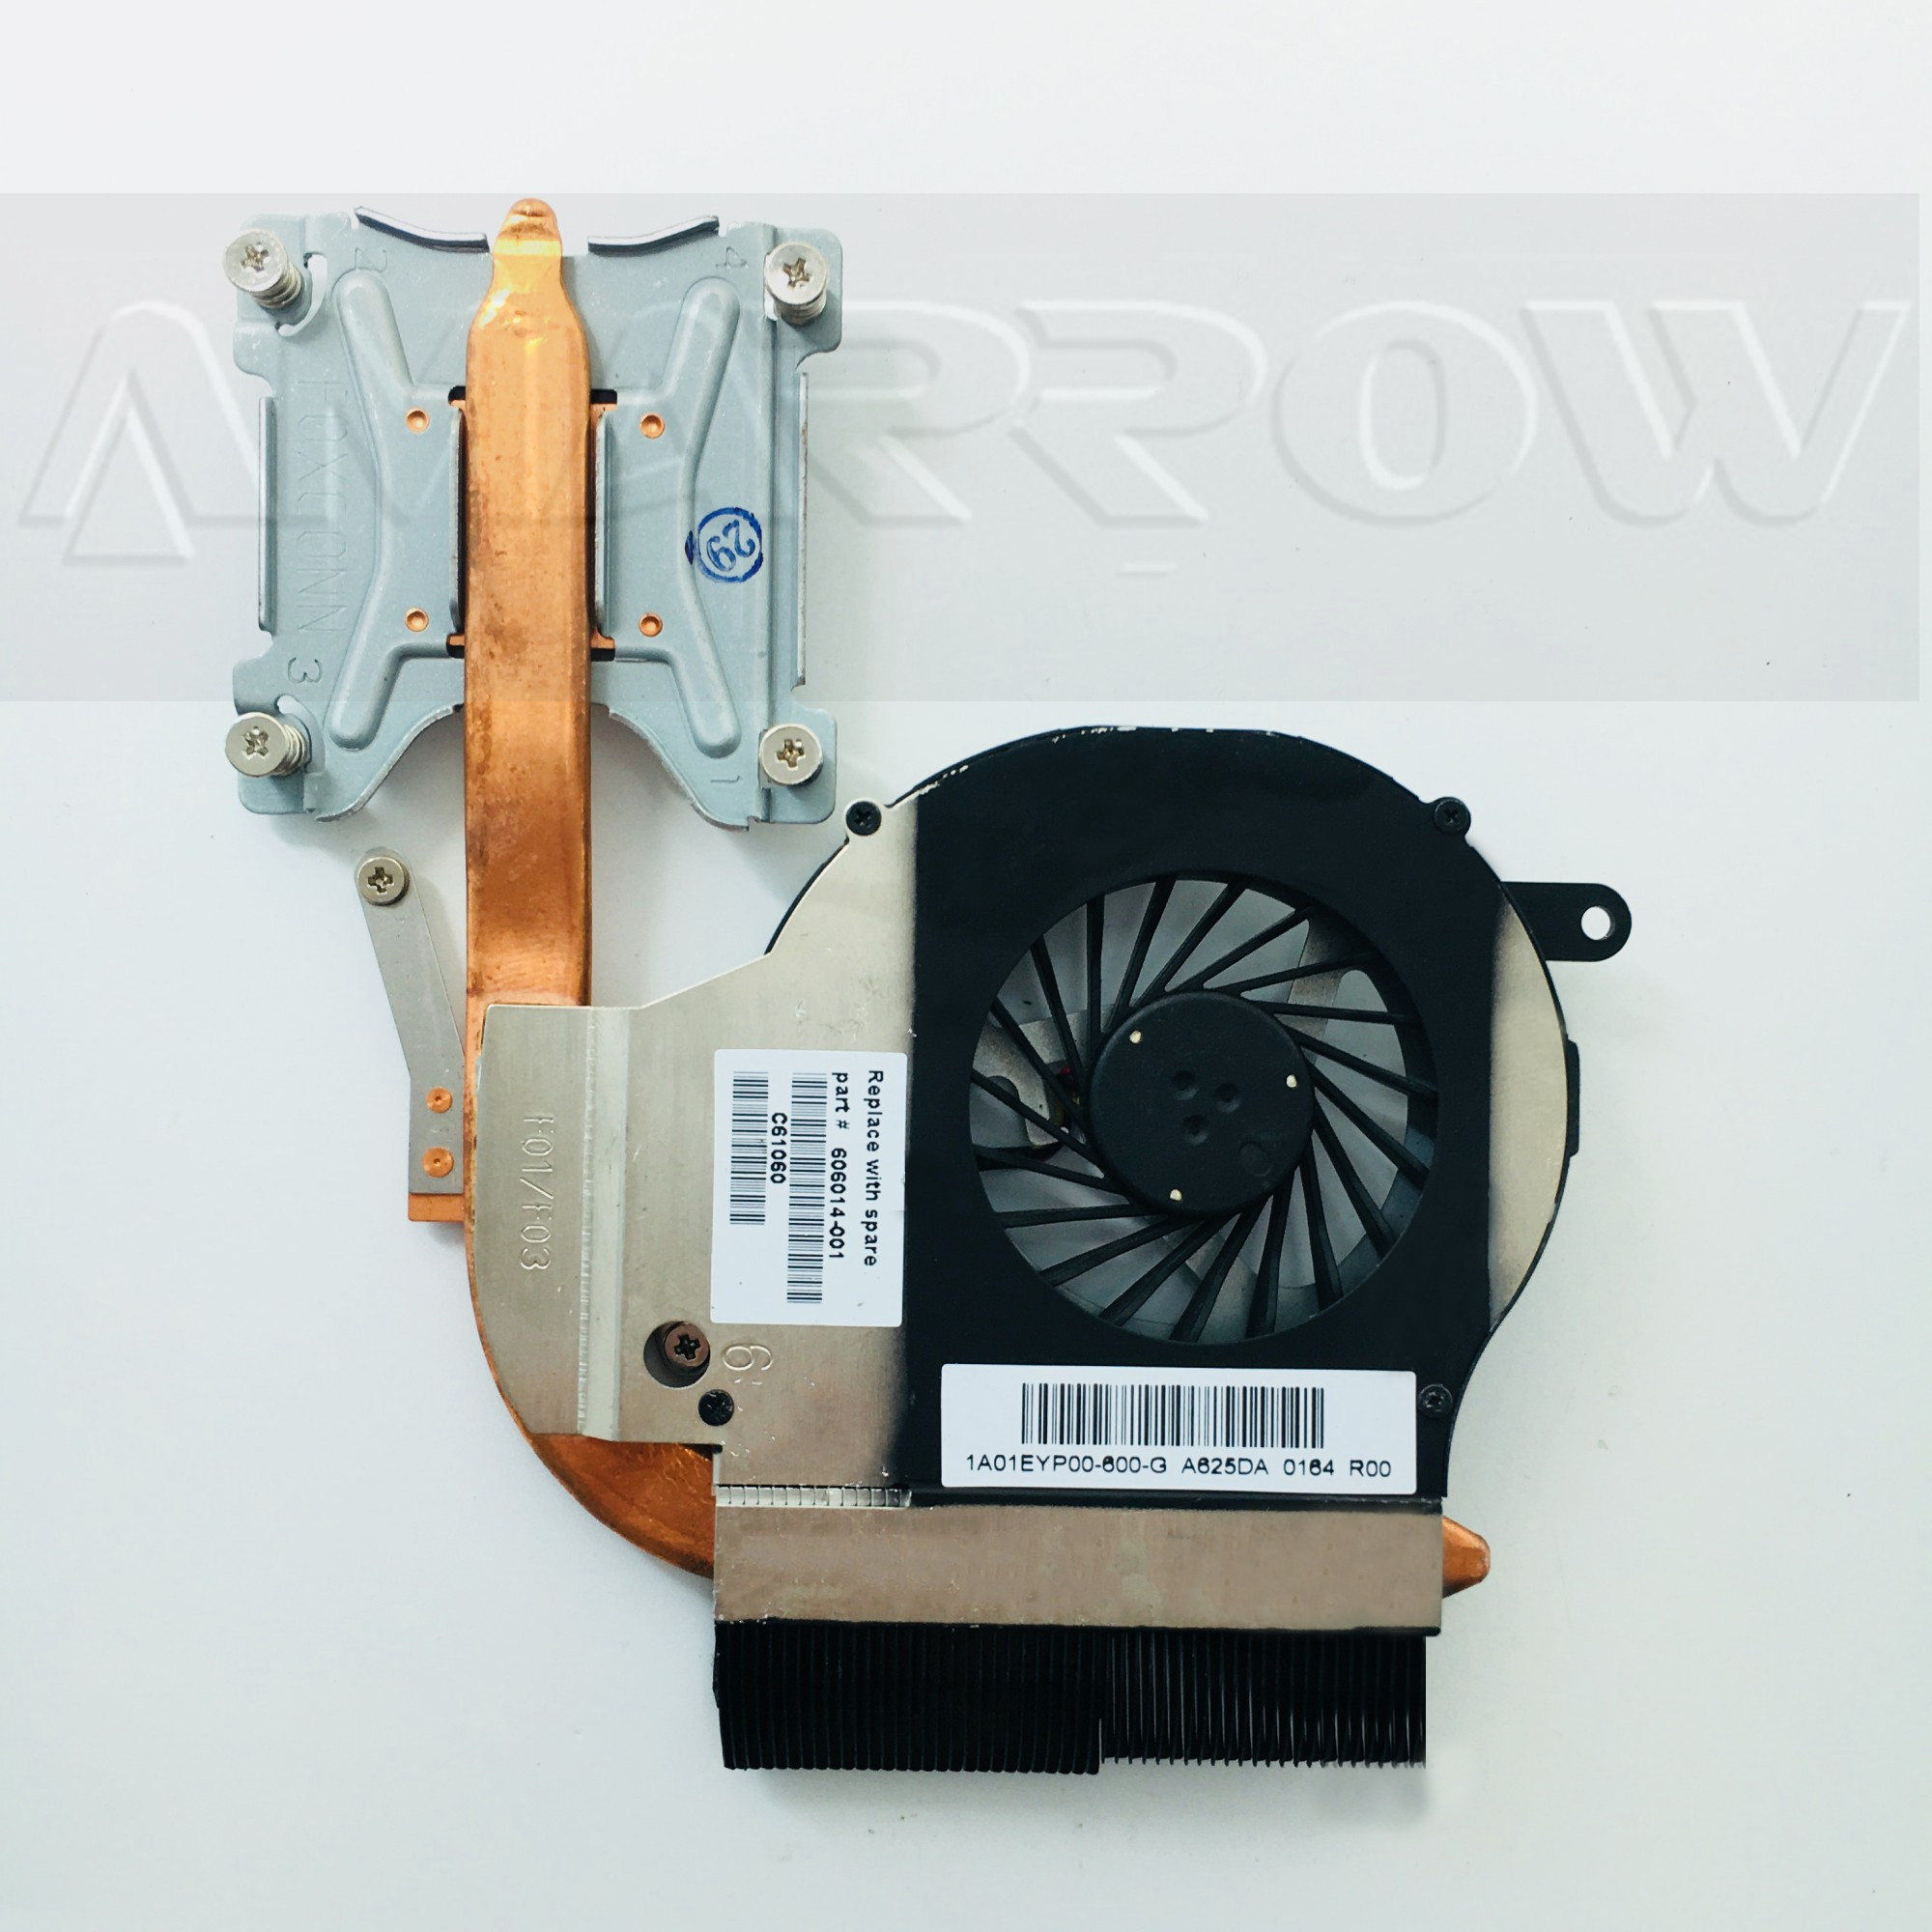 Original Free Shipping For HP Pavilion CQ62 G62 G62-B35SG G72 Fan And Independent Thermal Module 606014-001 1A01EYP00-600-G